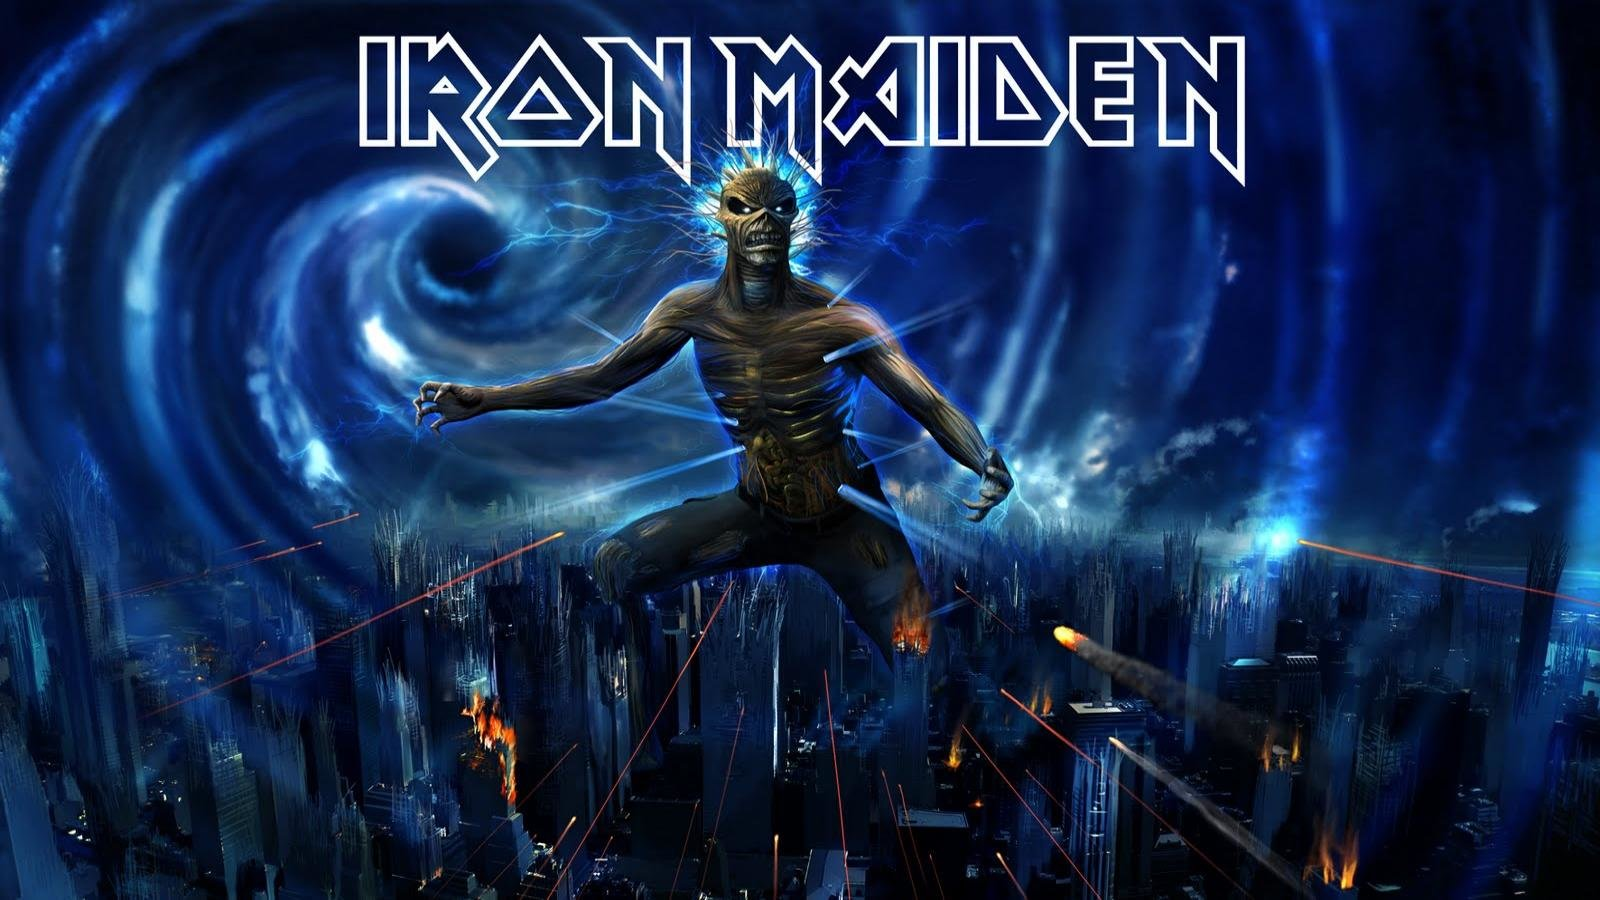 Free Iron Maiden High Quality Wallpaper Id72435 For Hd